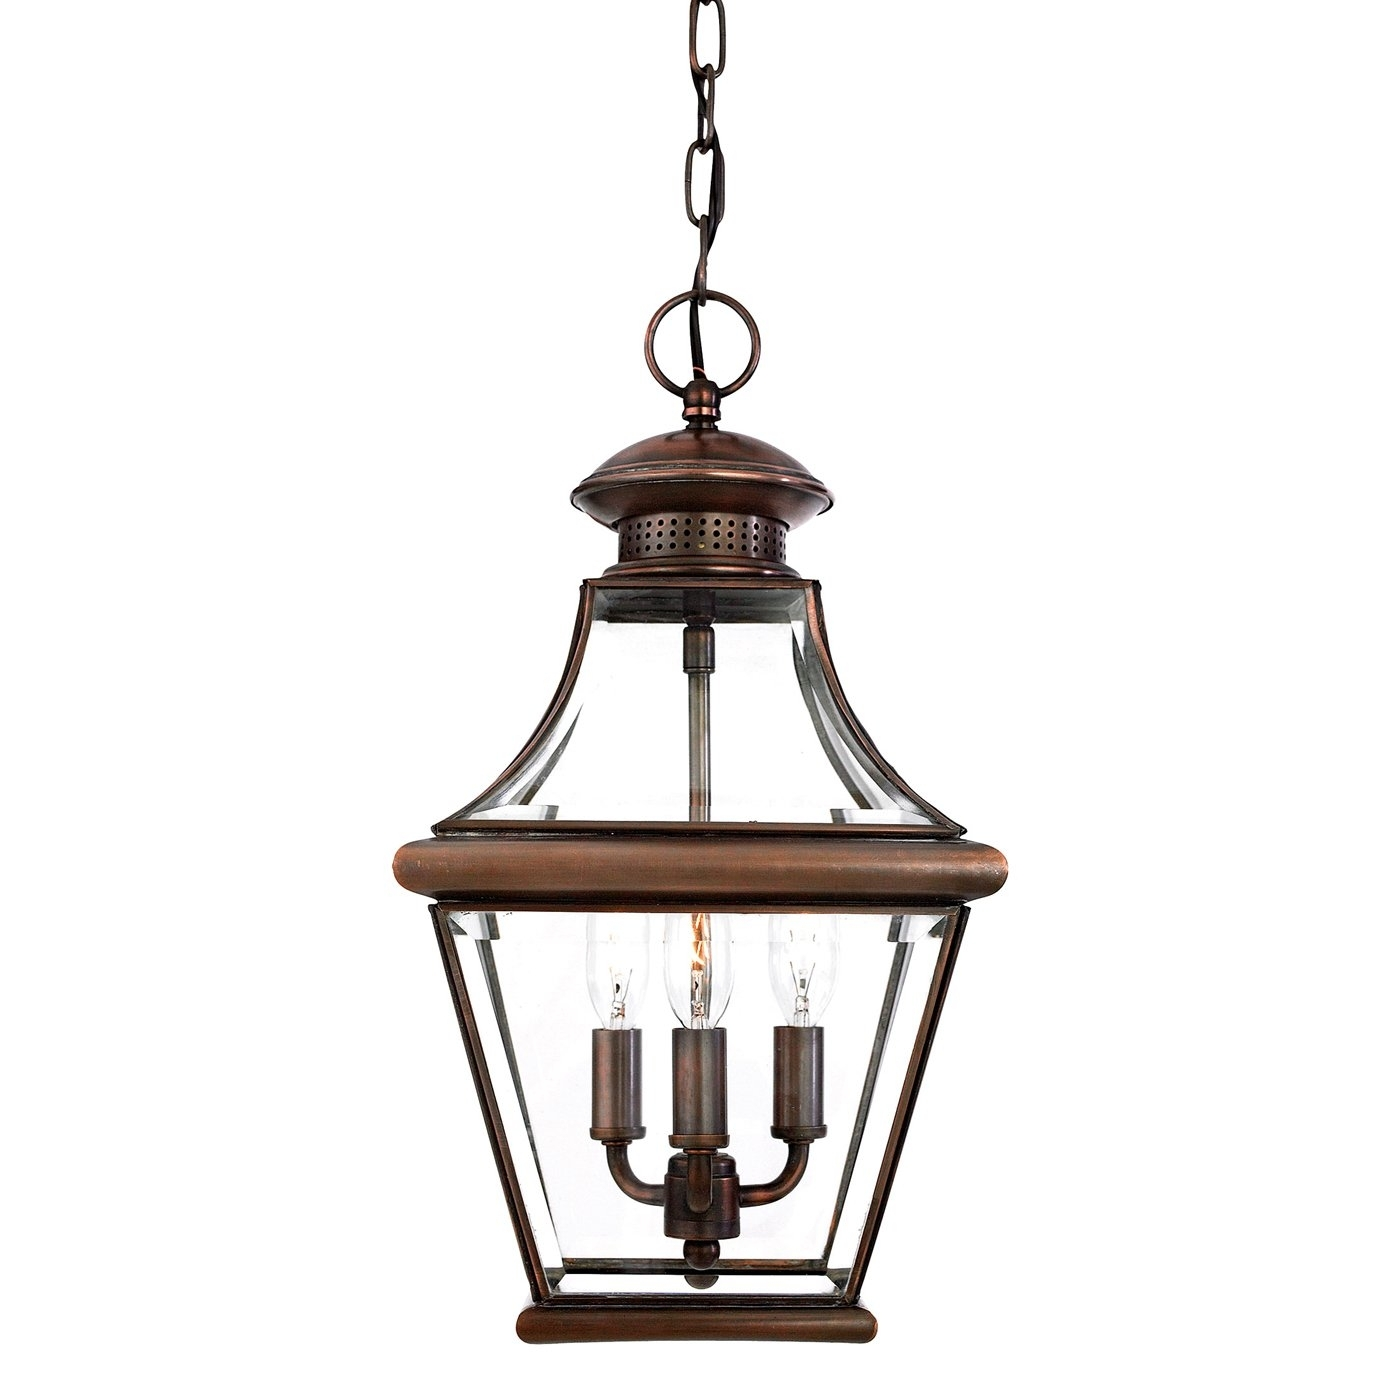 Designer Pendant Motion Lights Home Depot: 15 Outstanding Outdoor Intended For Outdoor Hanging Lights At Home Depot (#3 of 15)